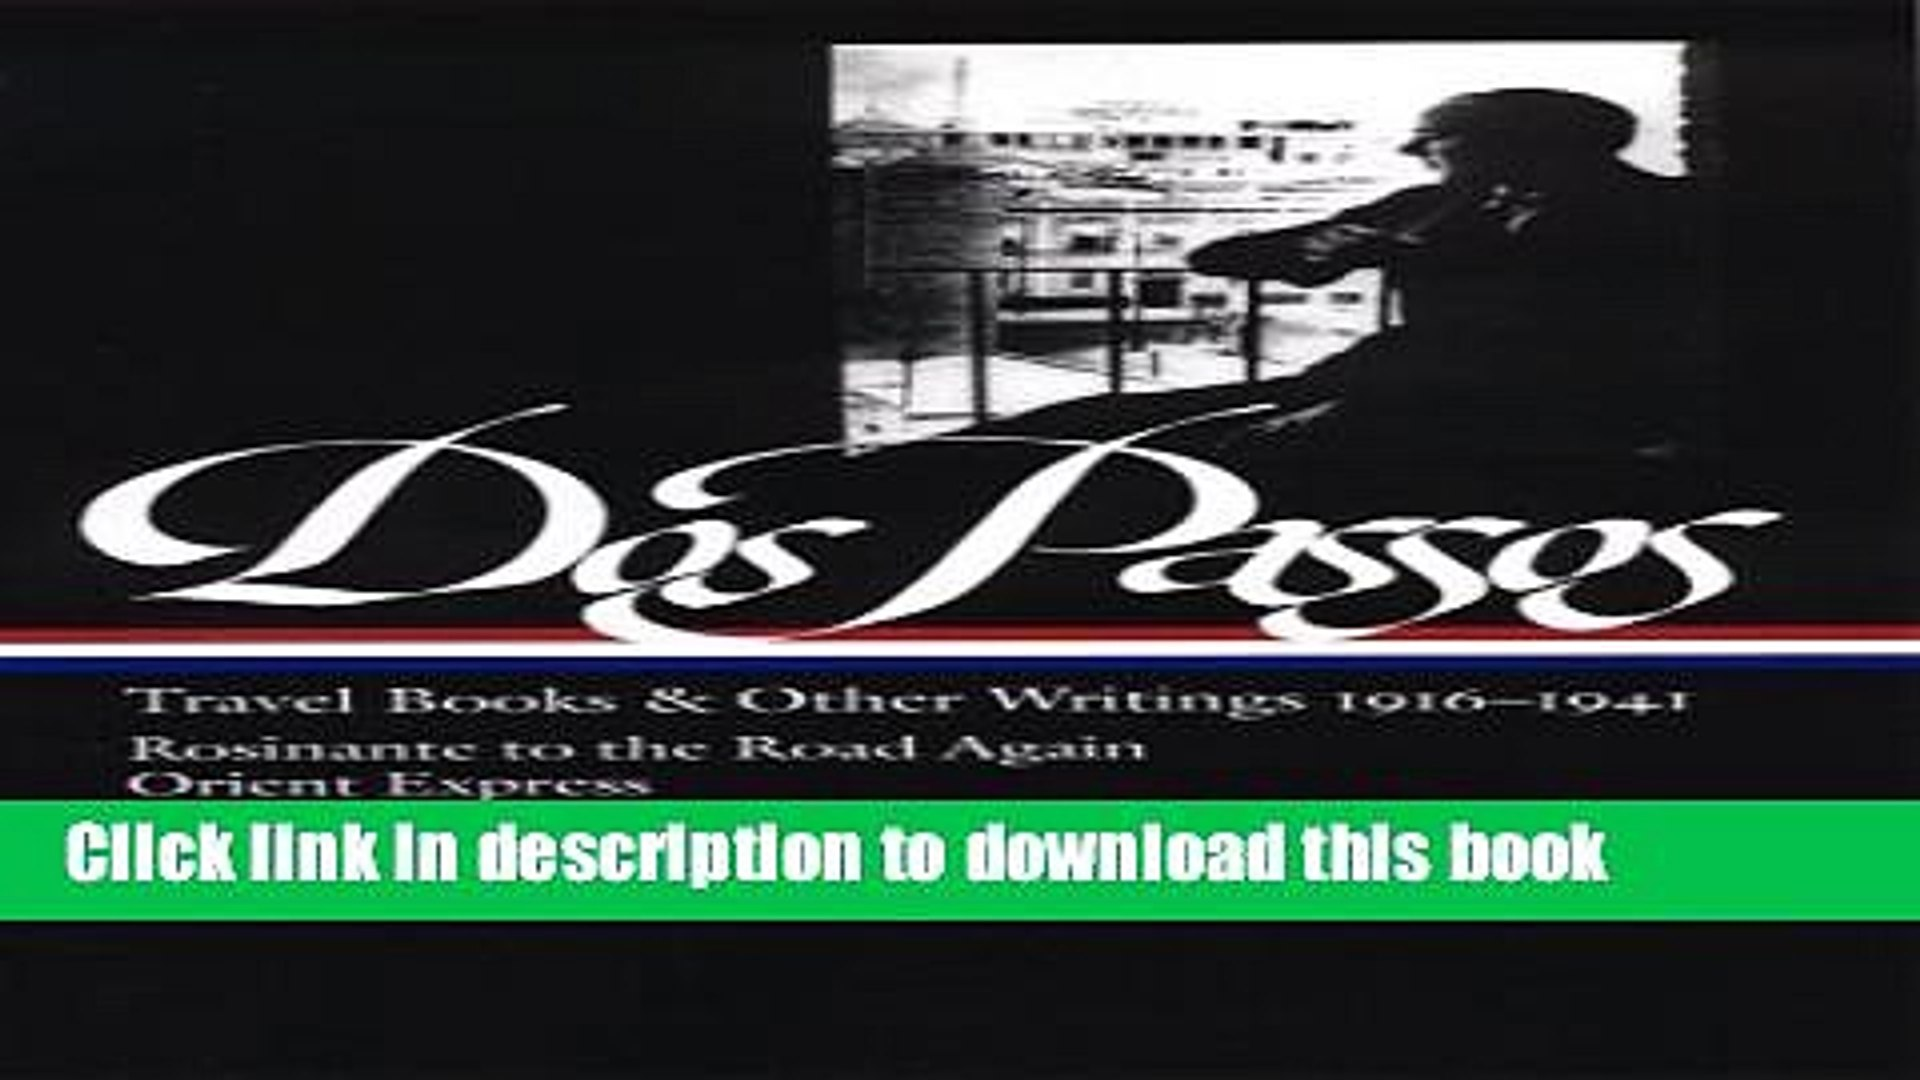 Download John Dos Passos: Travel Books and Other Writings 1916-1941 Ebook Online